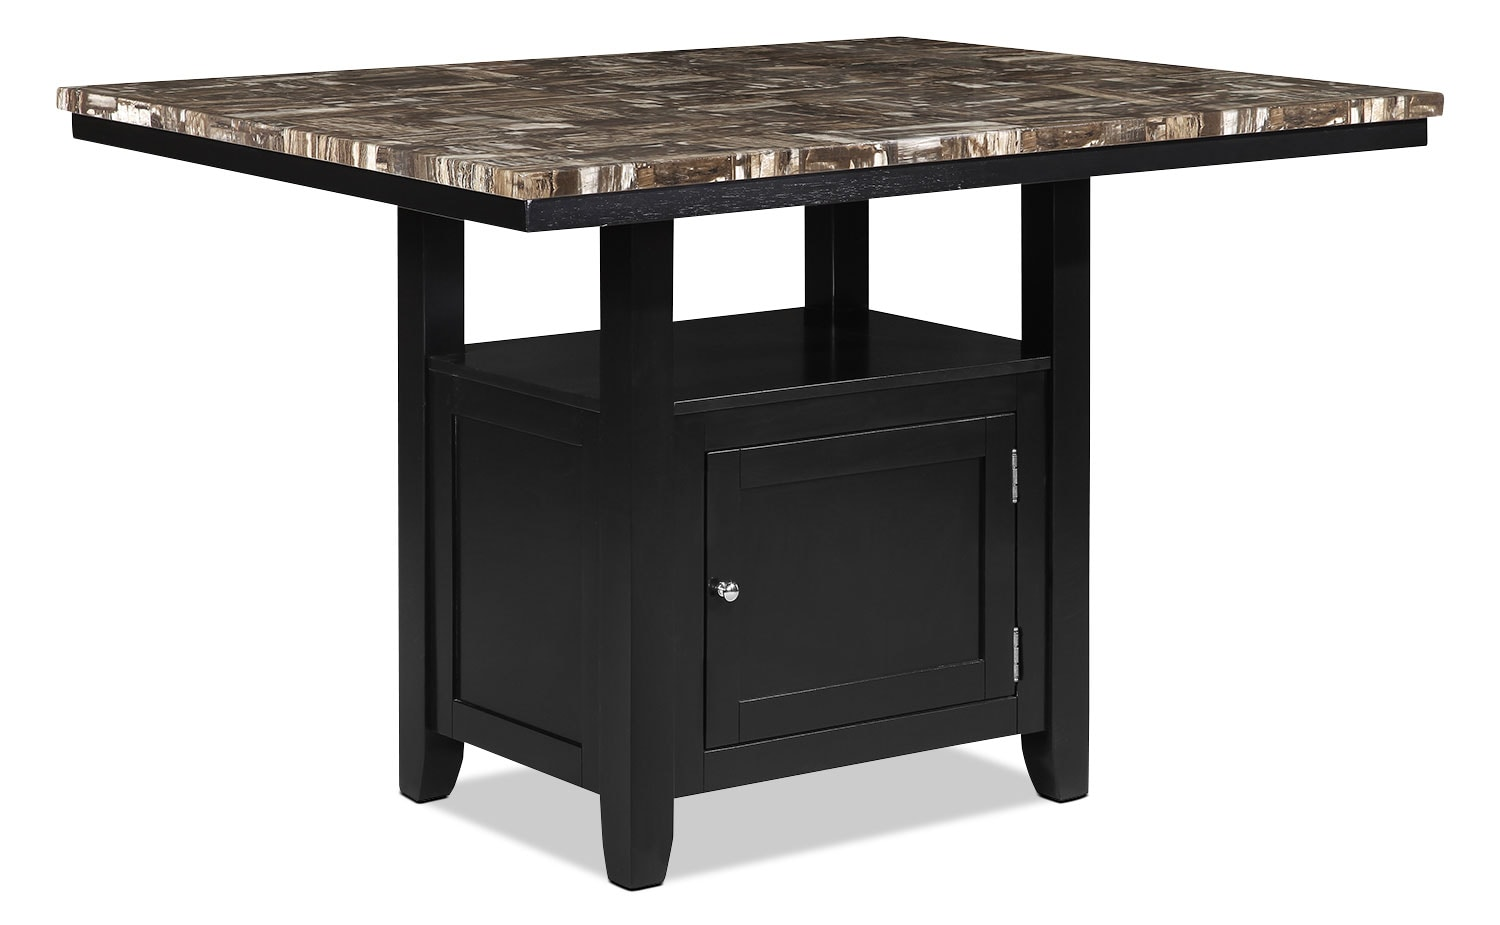 vale counter height dining table with storage the brick. Black Bedroom Furniture Sets. Home Design Ideas